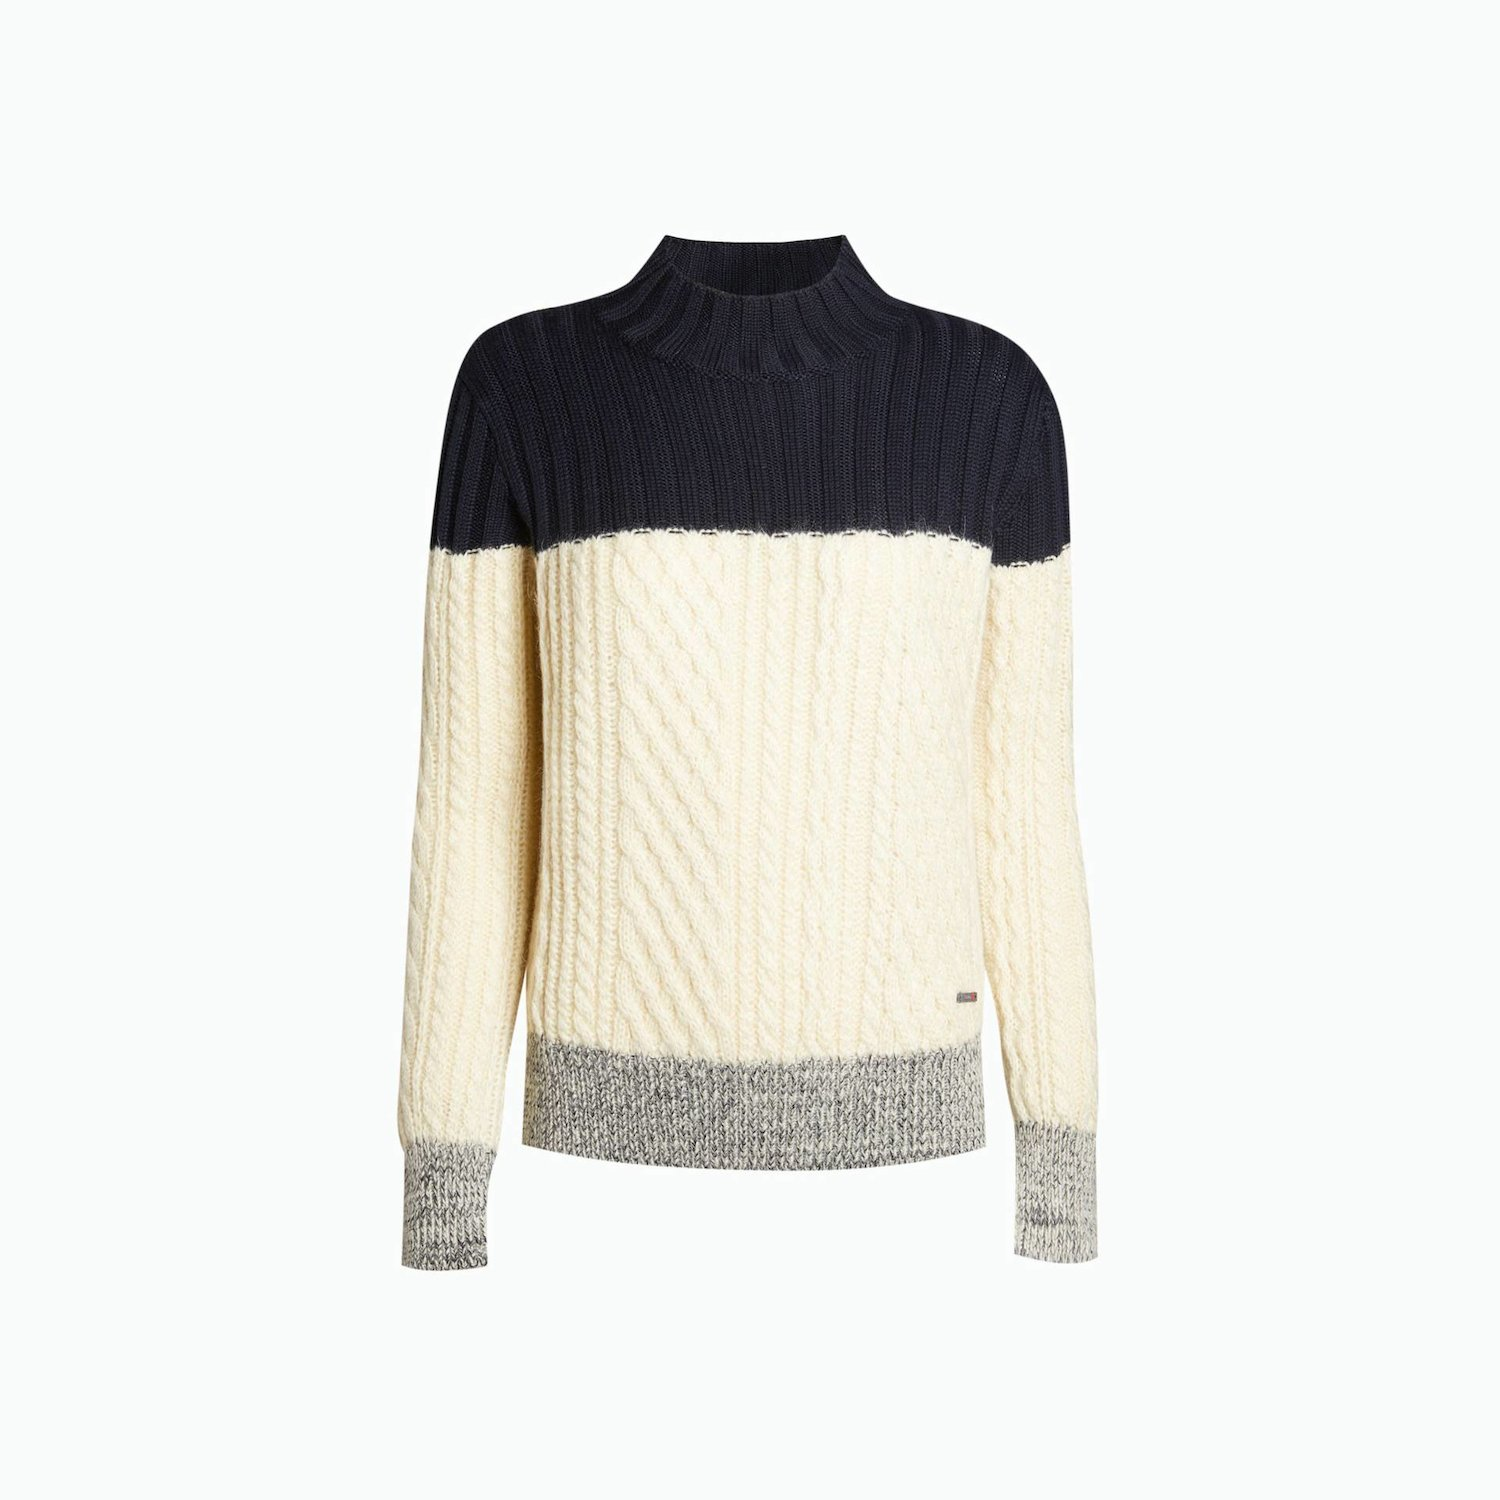 B119 Jumper - Navy / White